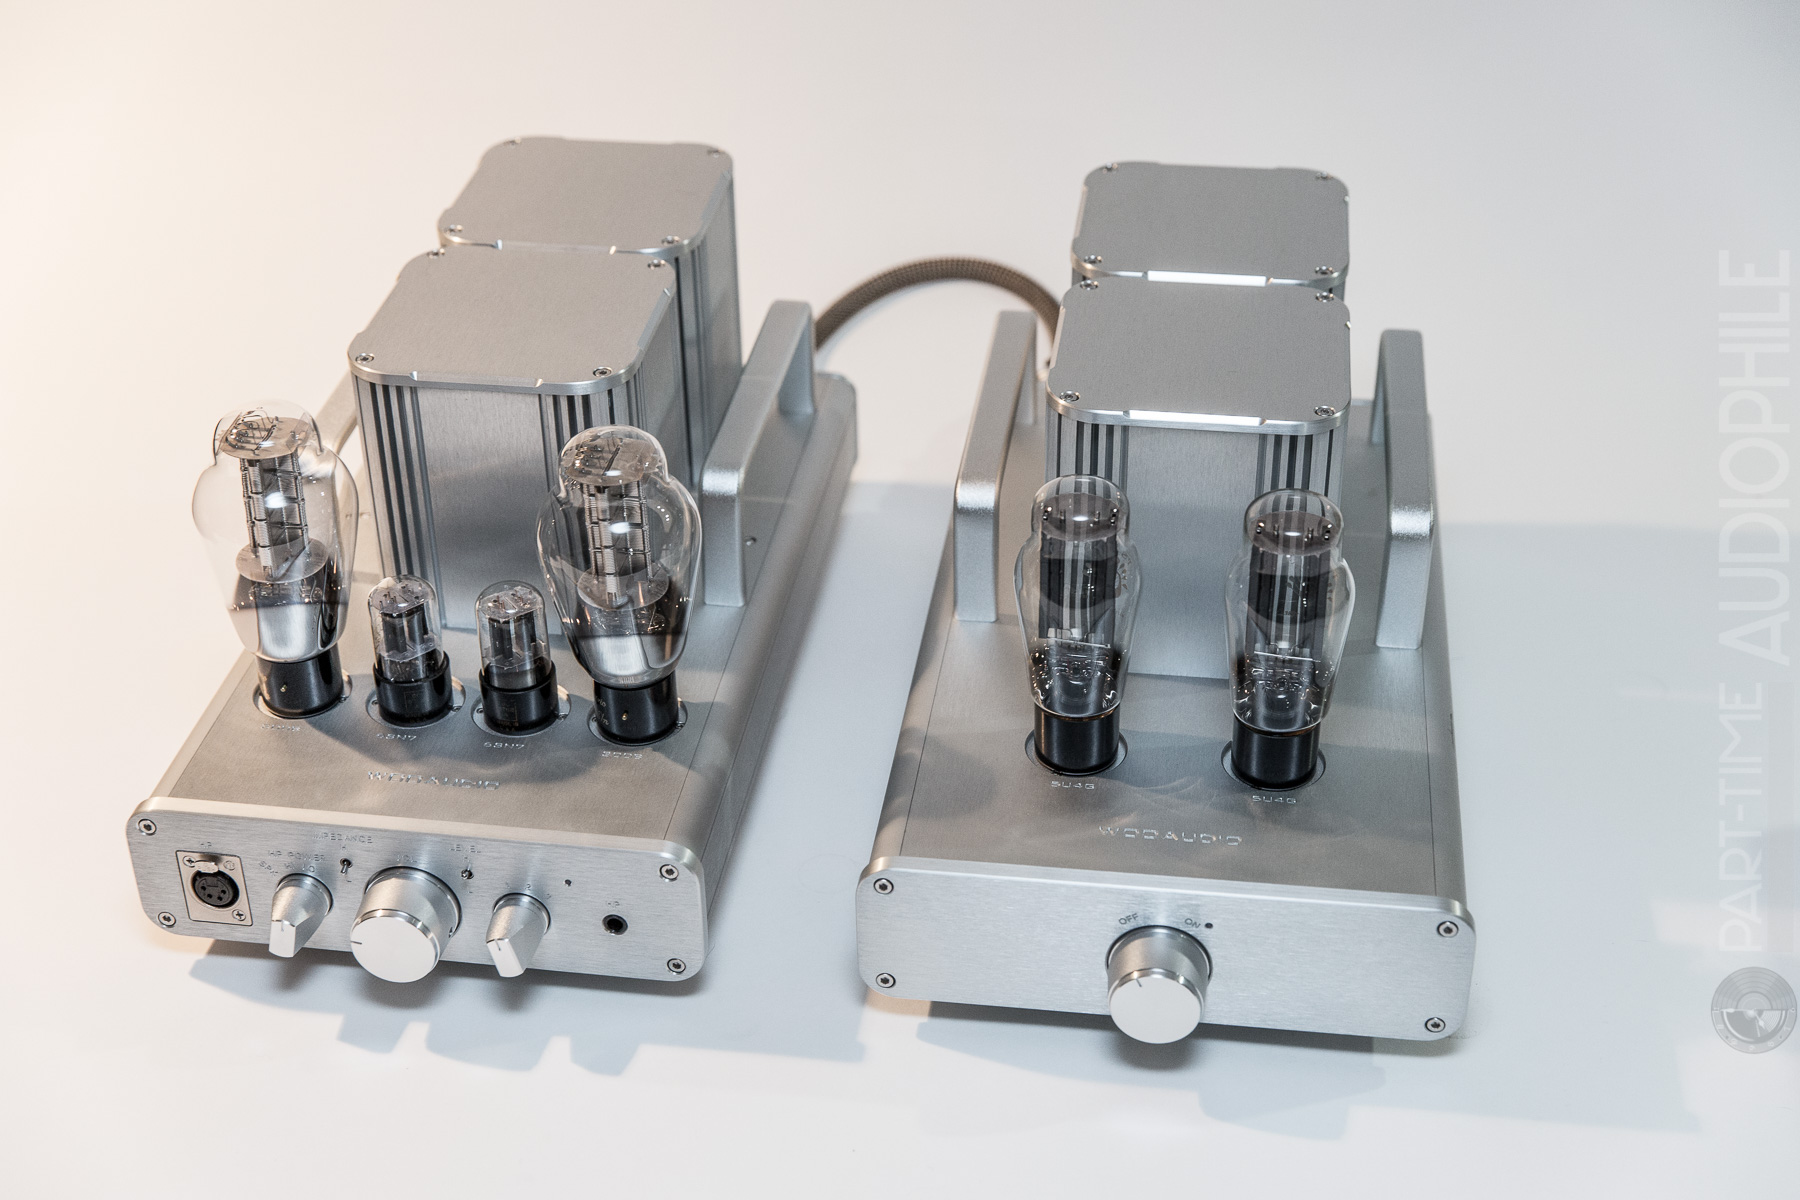 Review Woo Audio Wa5le V2 Vacuum Tube Headphone Amplifier Part Wah With Even Simpler Volume Pedal Wiring Assuming You Have Time Audiophile